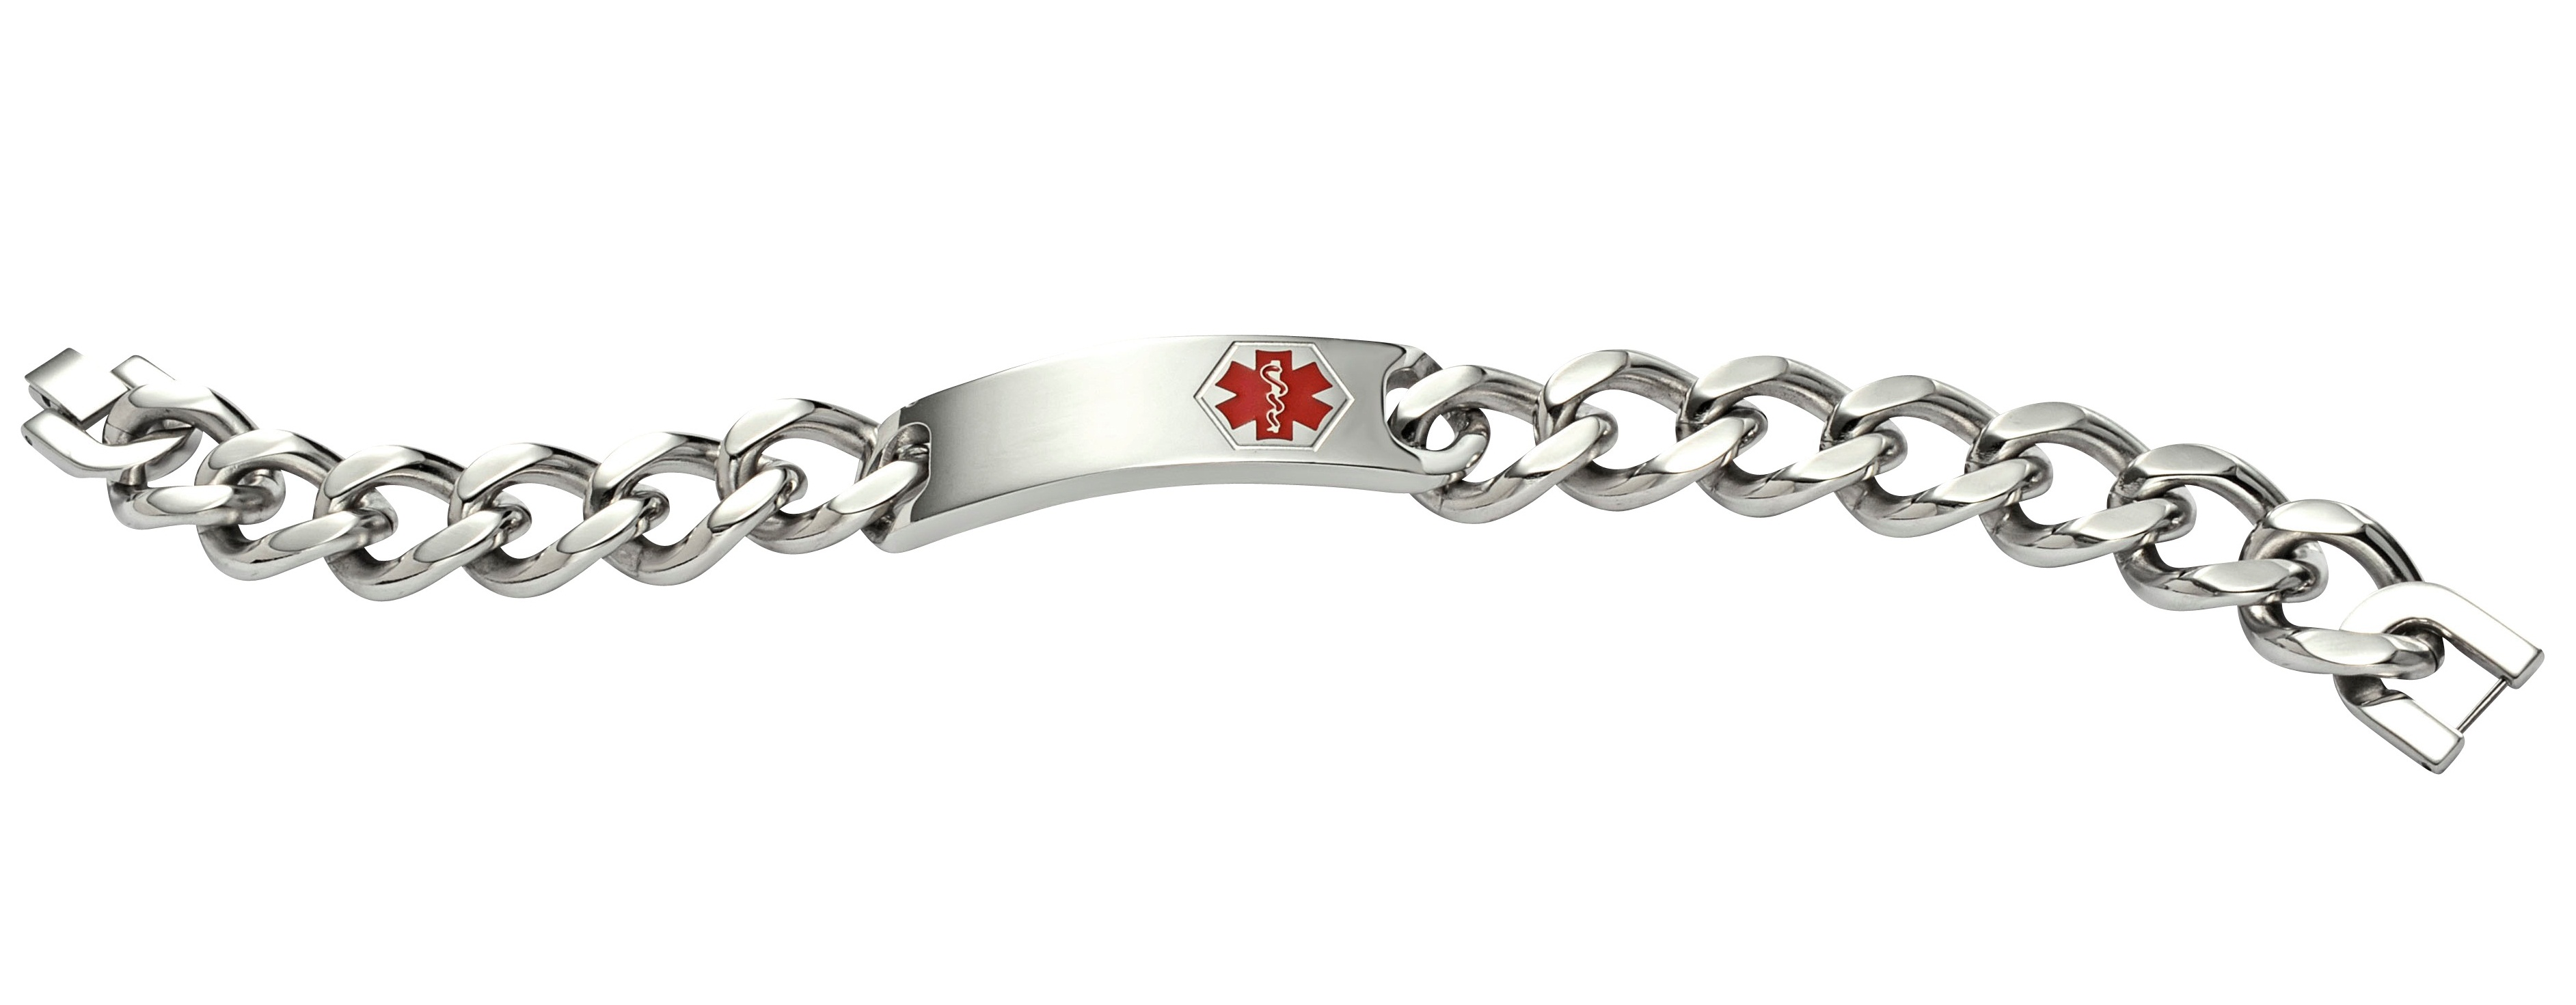 Stainless Steel Classic Wide Medical Bracelet - Medical ID